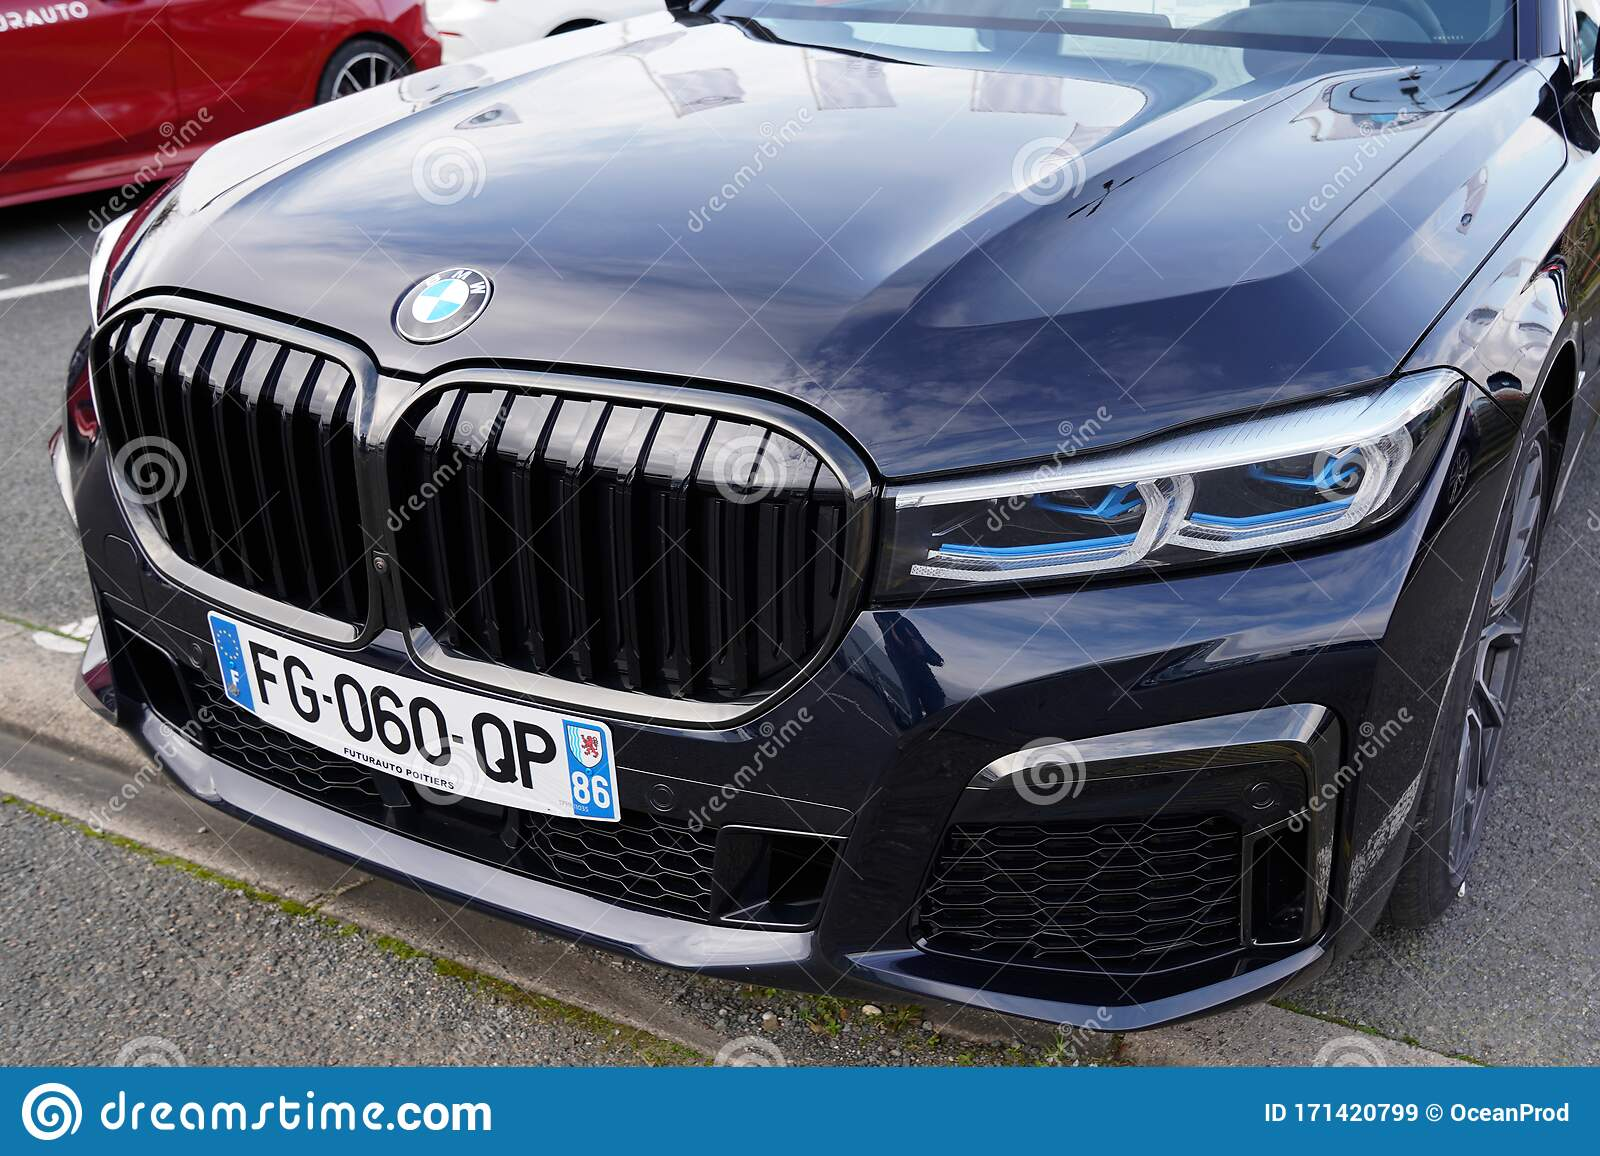 1 074 Bmw New Logo Photos Free Royalty Free Stock Photos From Dreamstime